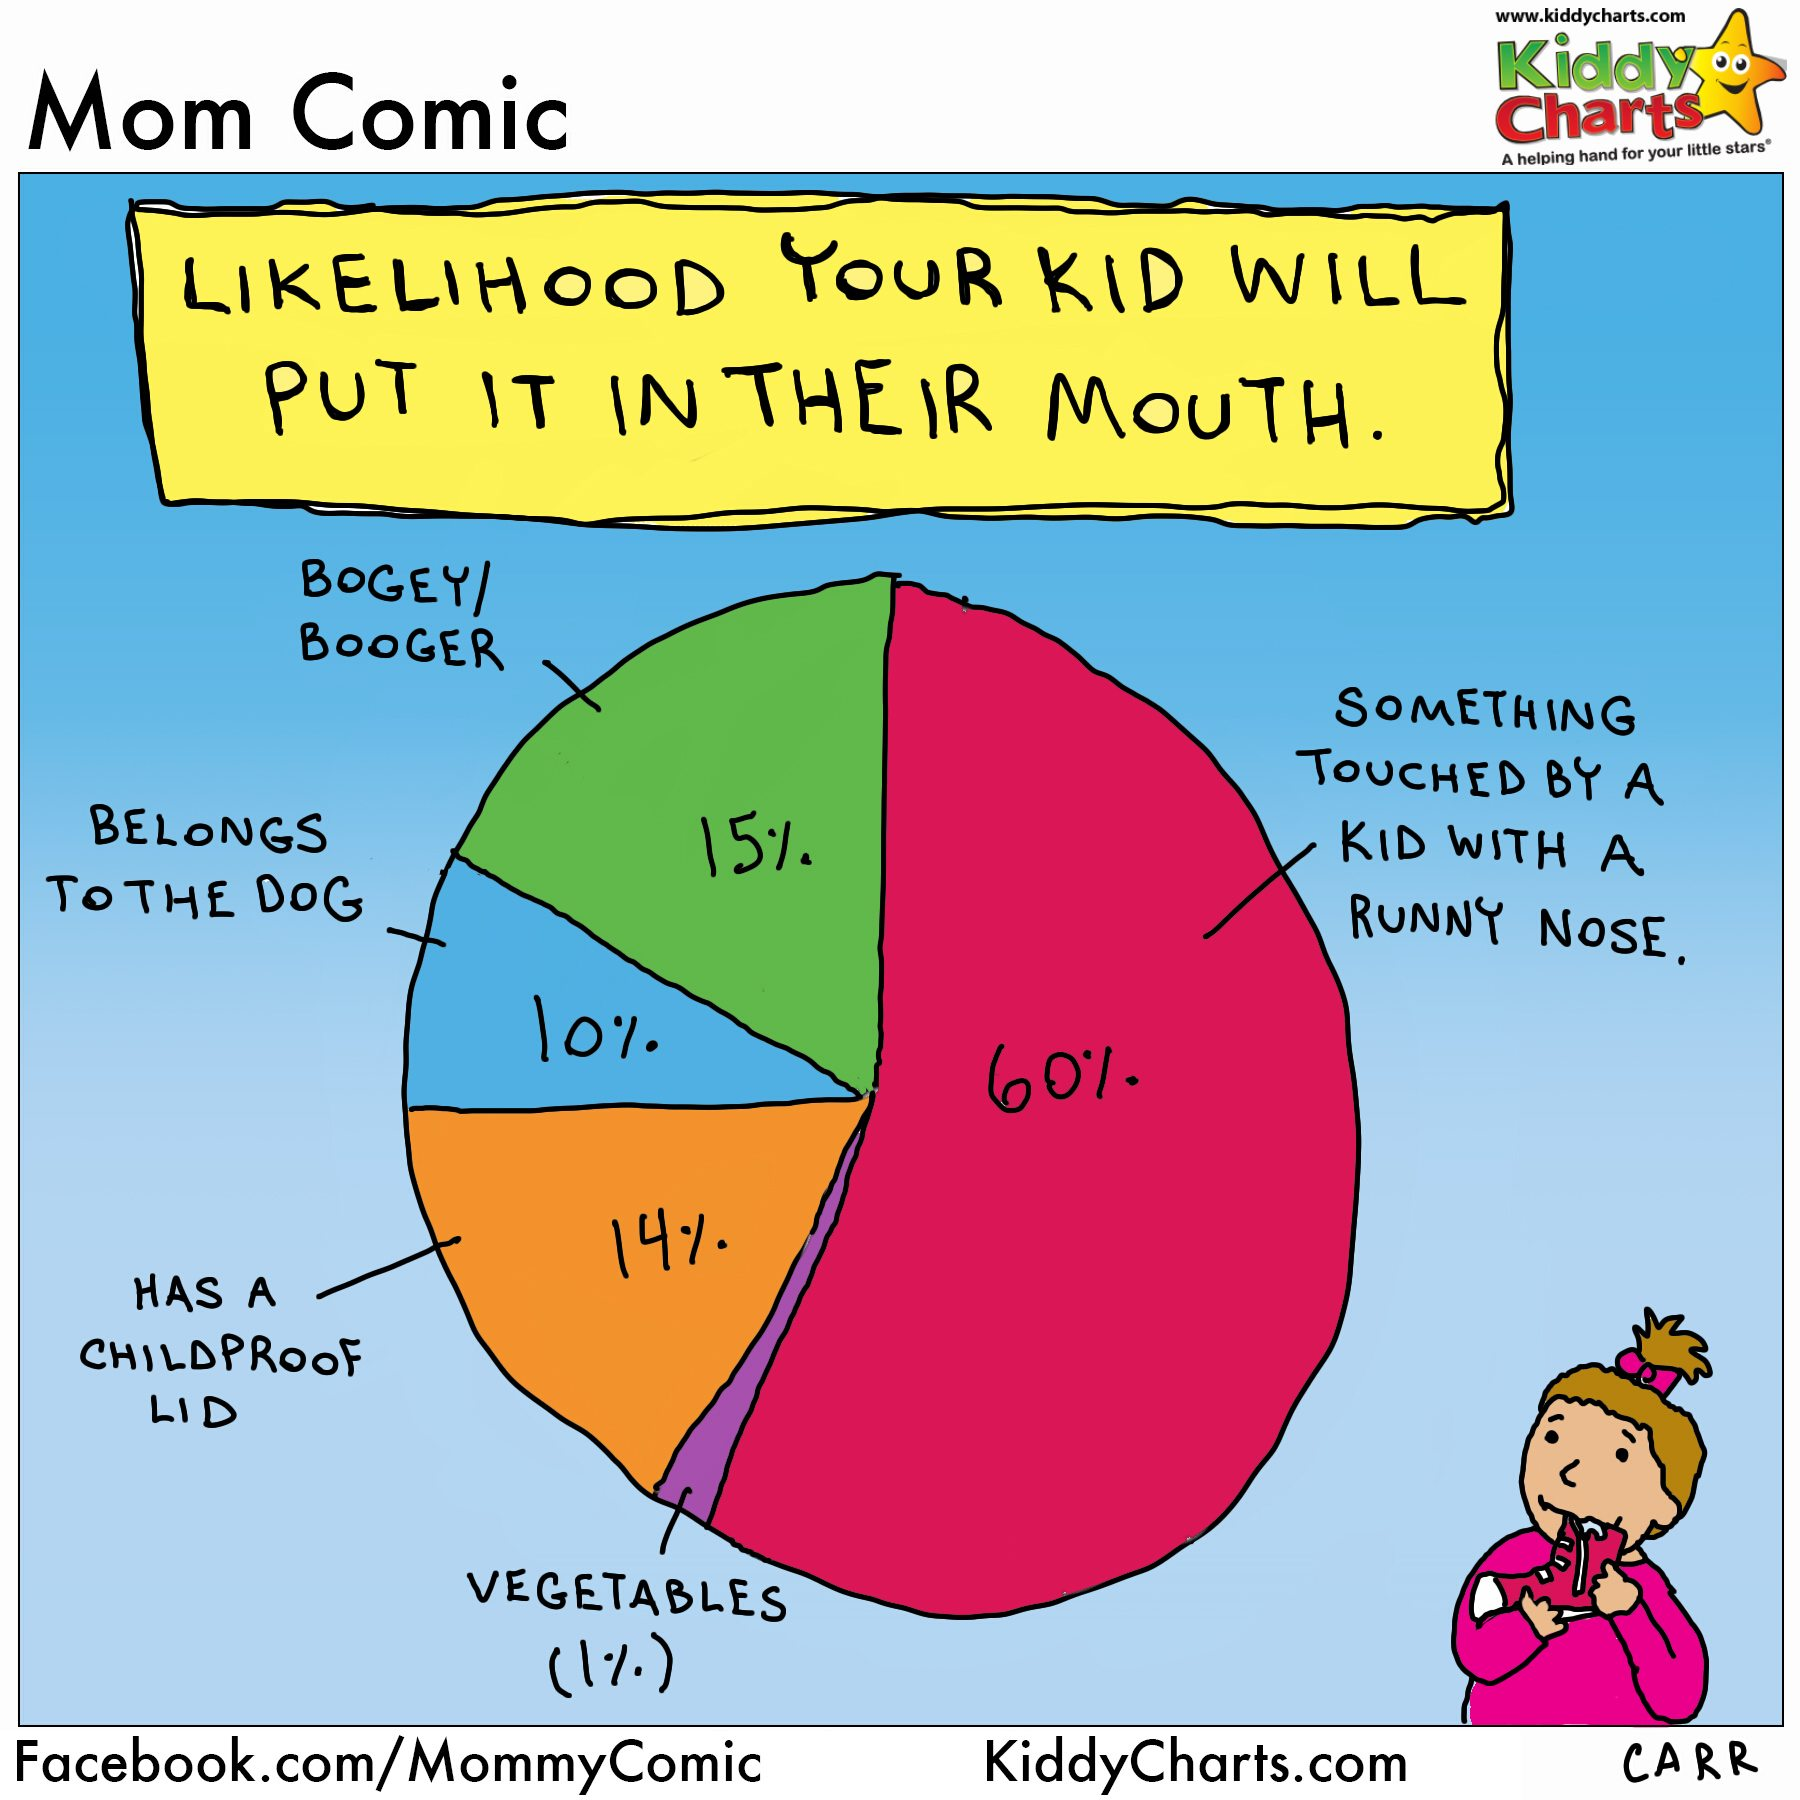 What your kids really want to put in their mouth - ALL THE TIME! We've got more great fun parenting charts and printables on the site. Come check them out; for a smile, or for some activities for you and yours.